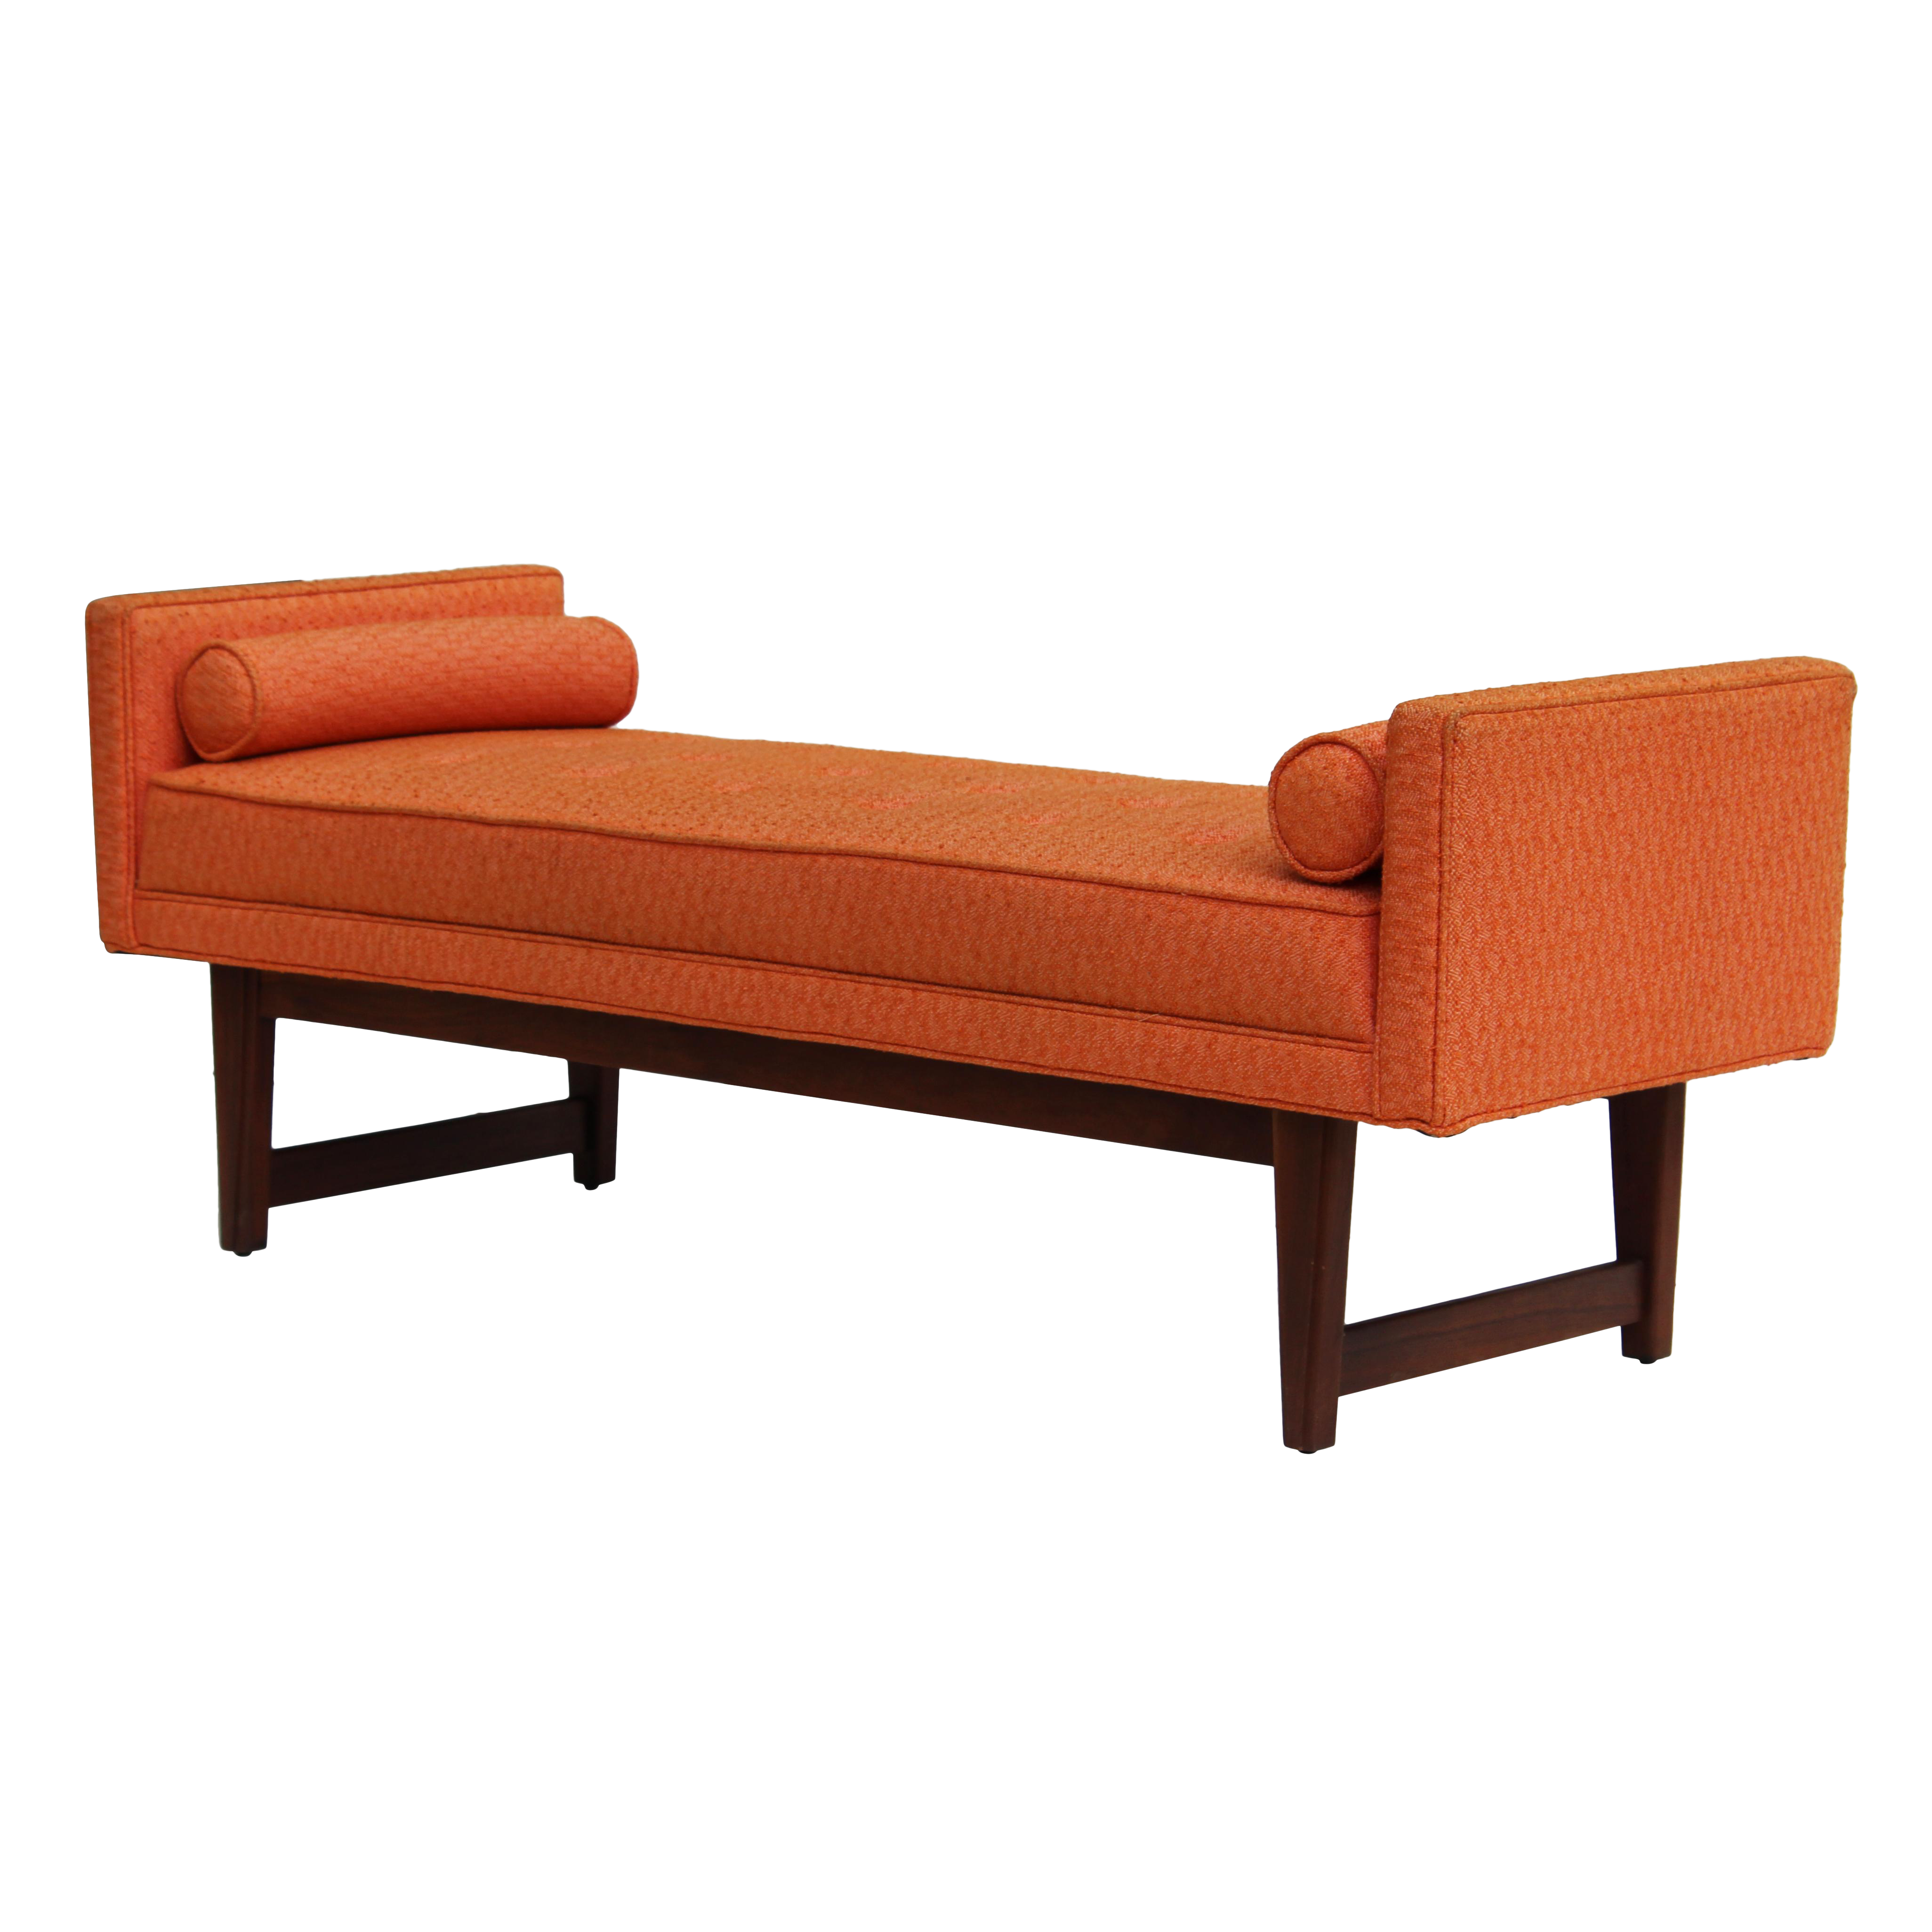 Chic Mid Century Modern Upholstered Bench By Selig Original Orange Textured Fabric With Pink Wove Mid Century Modern Style Mid Century Bench Upholstered Bench